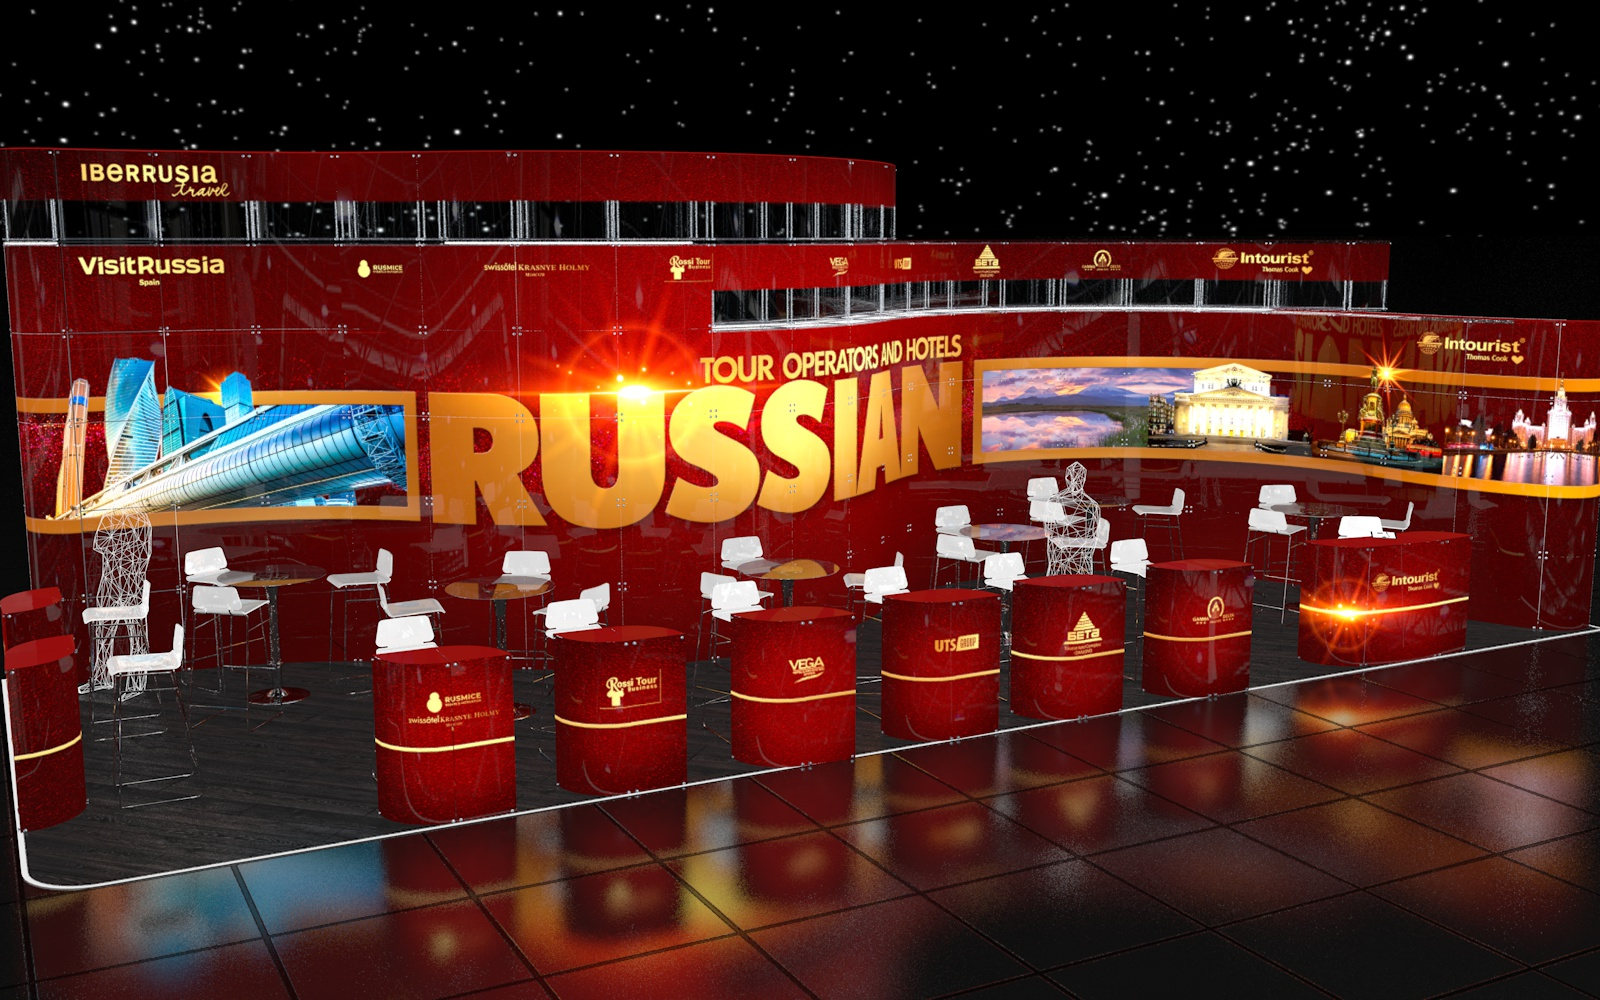 Stand of Russia for the exhibition in Madrid